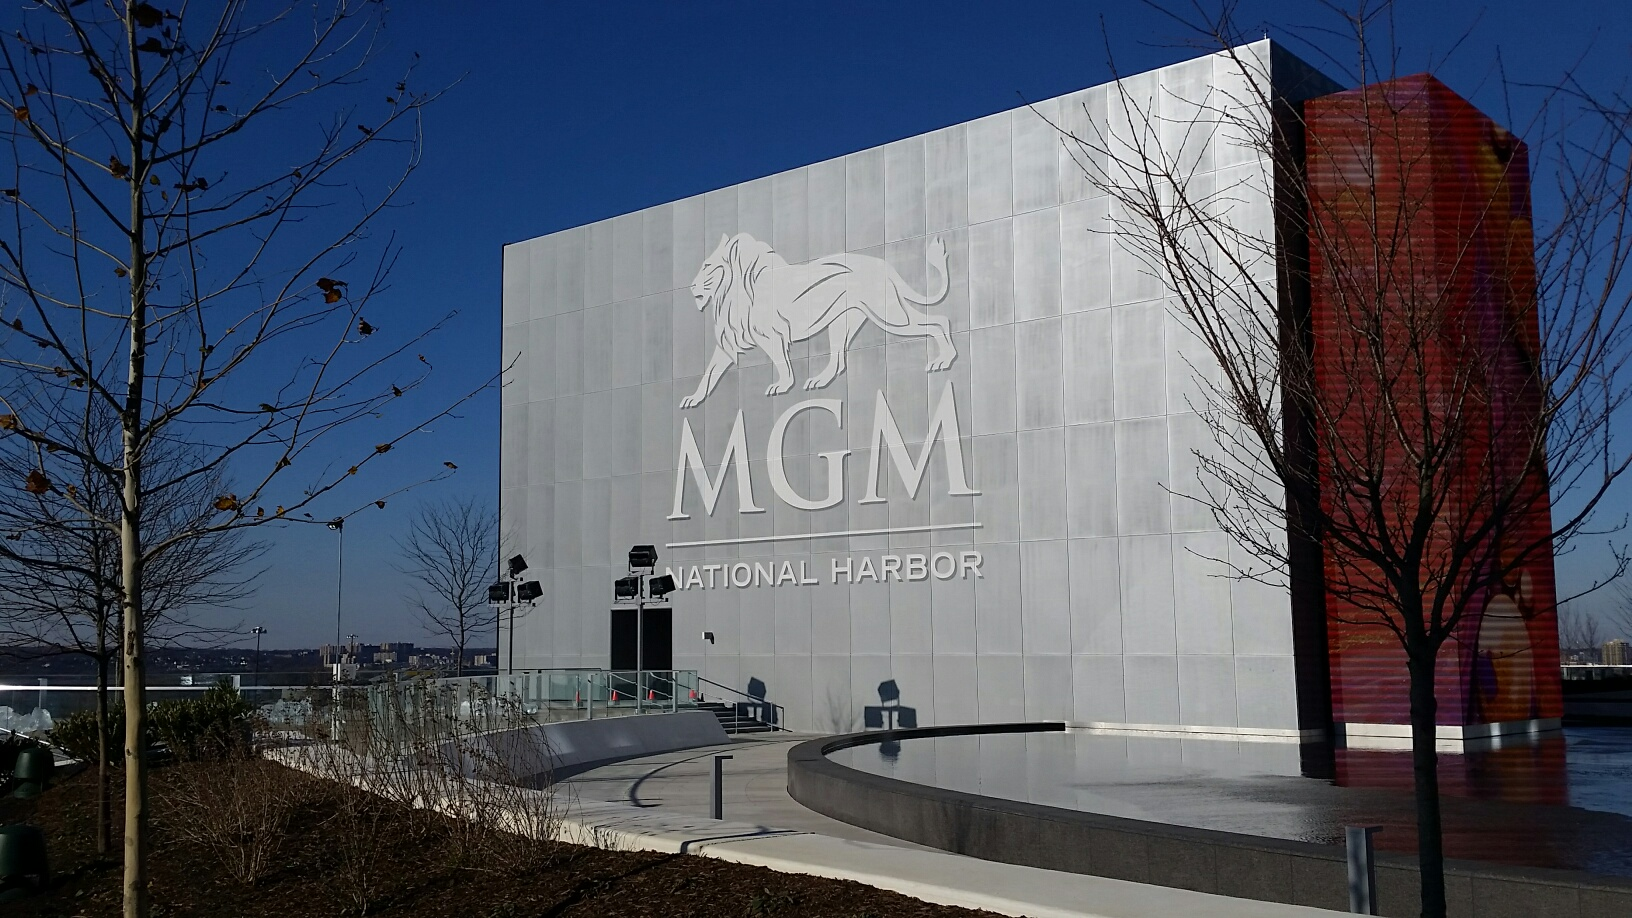 The MGM National Harbor opened in December 2016.  (WTOP/Kathy Stewart)